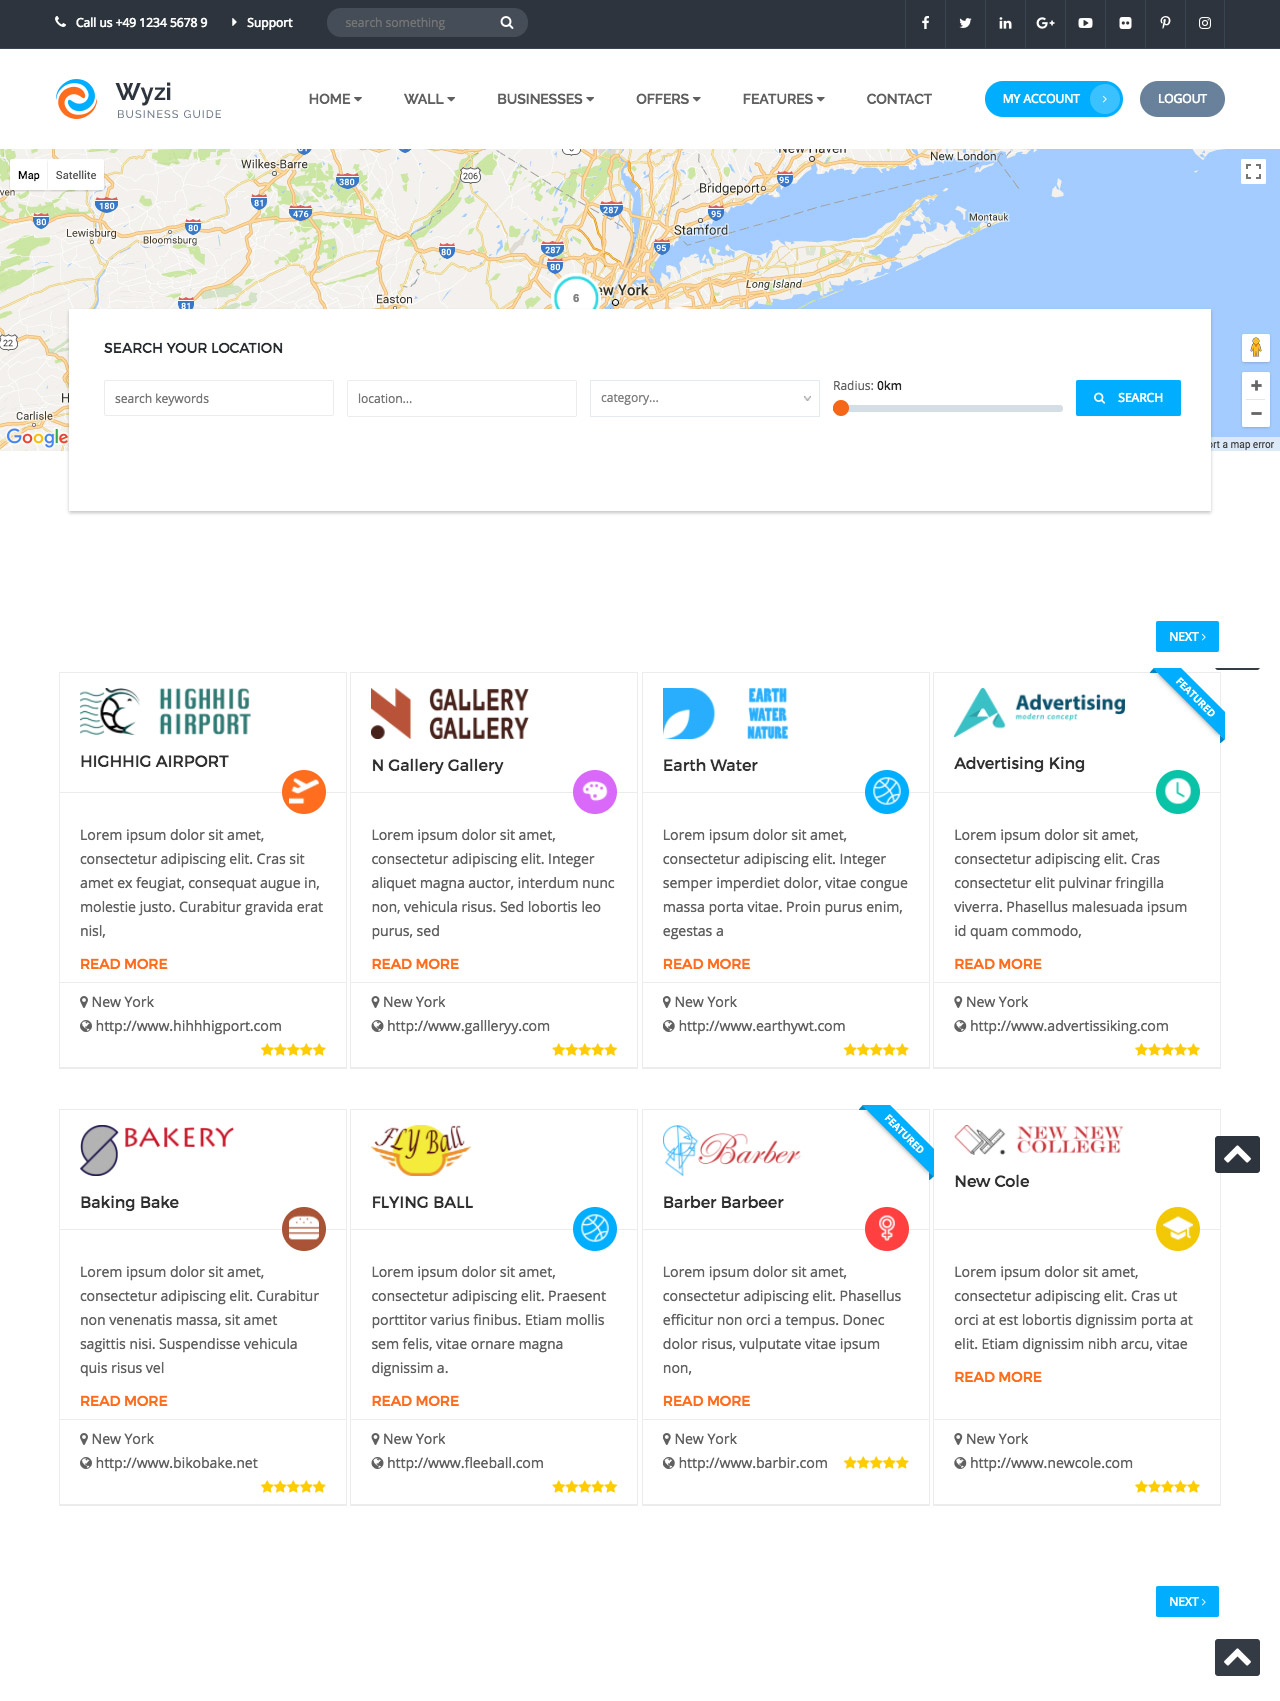 wyzi-listings-under-the-map